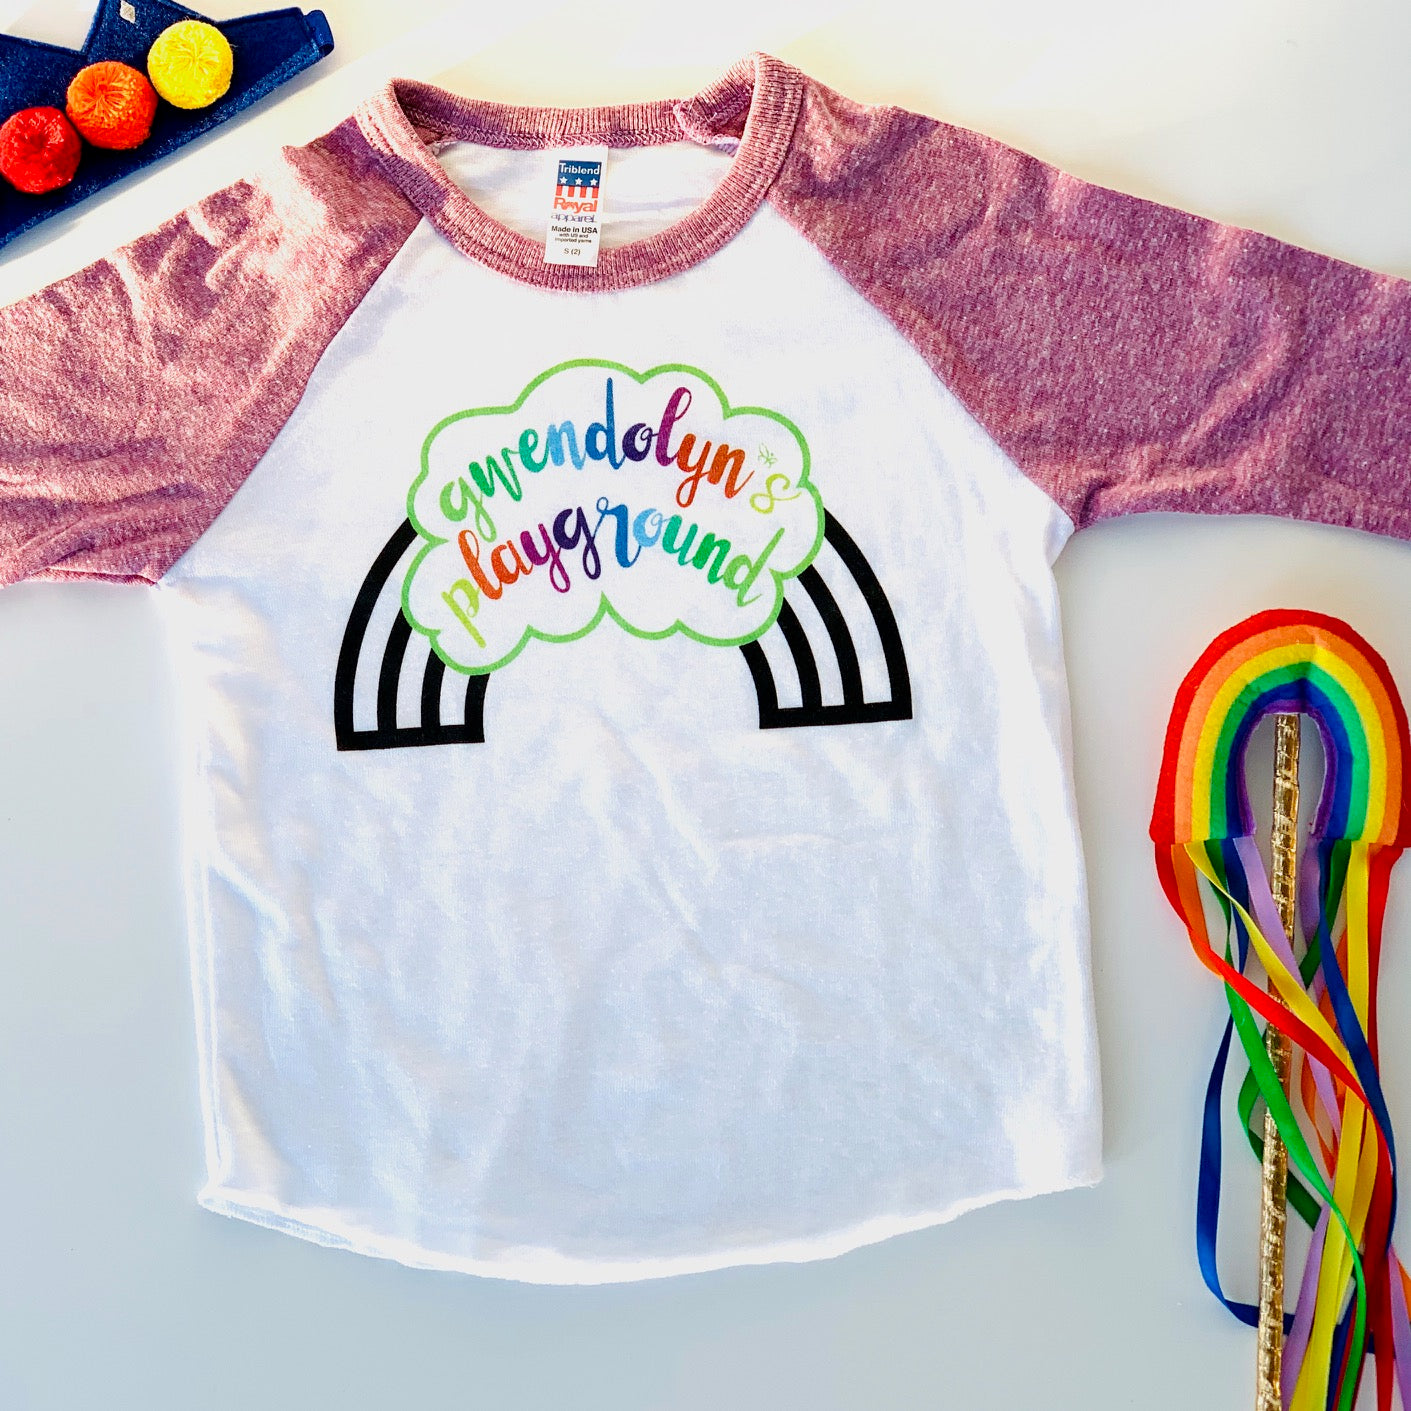 KIDS GWENDOLYN'S PLAYGROUND BASEBALL TEE